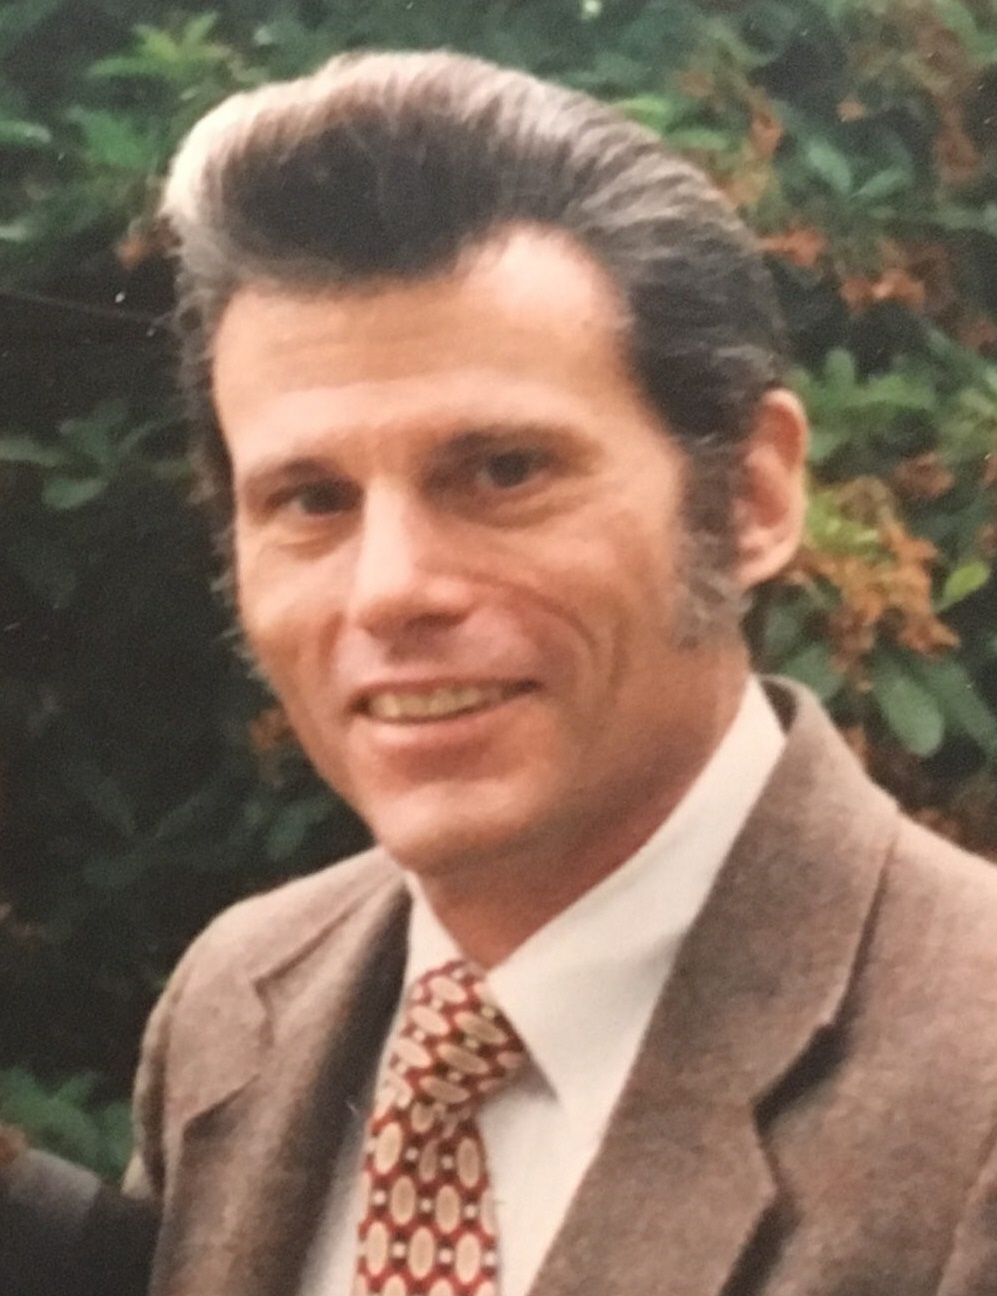 Michael Schlesinger, former professor in the Department of Atmospheric Sciences, passed away at 74 last Wednesday.